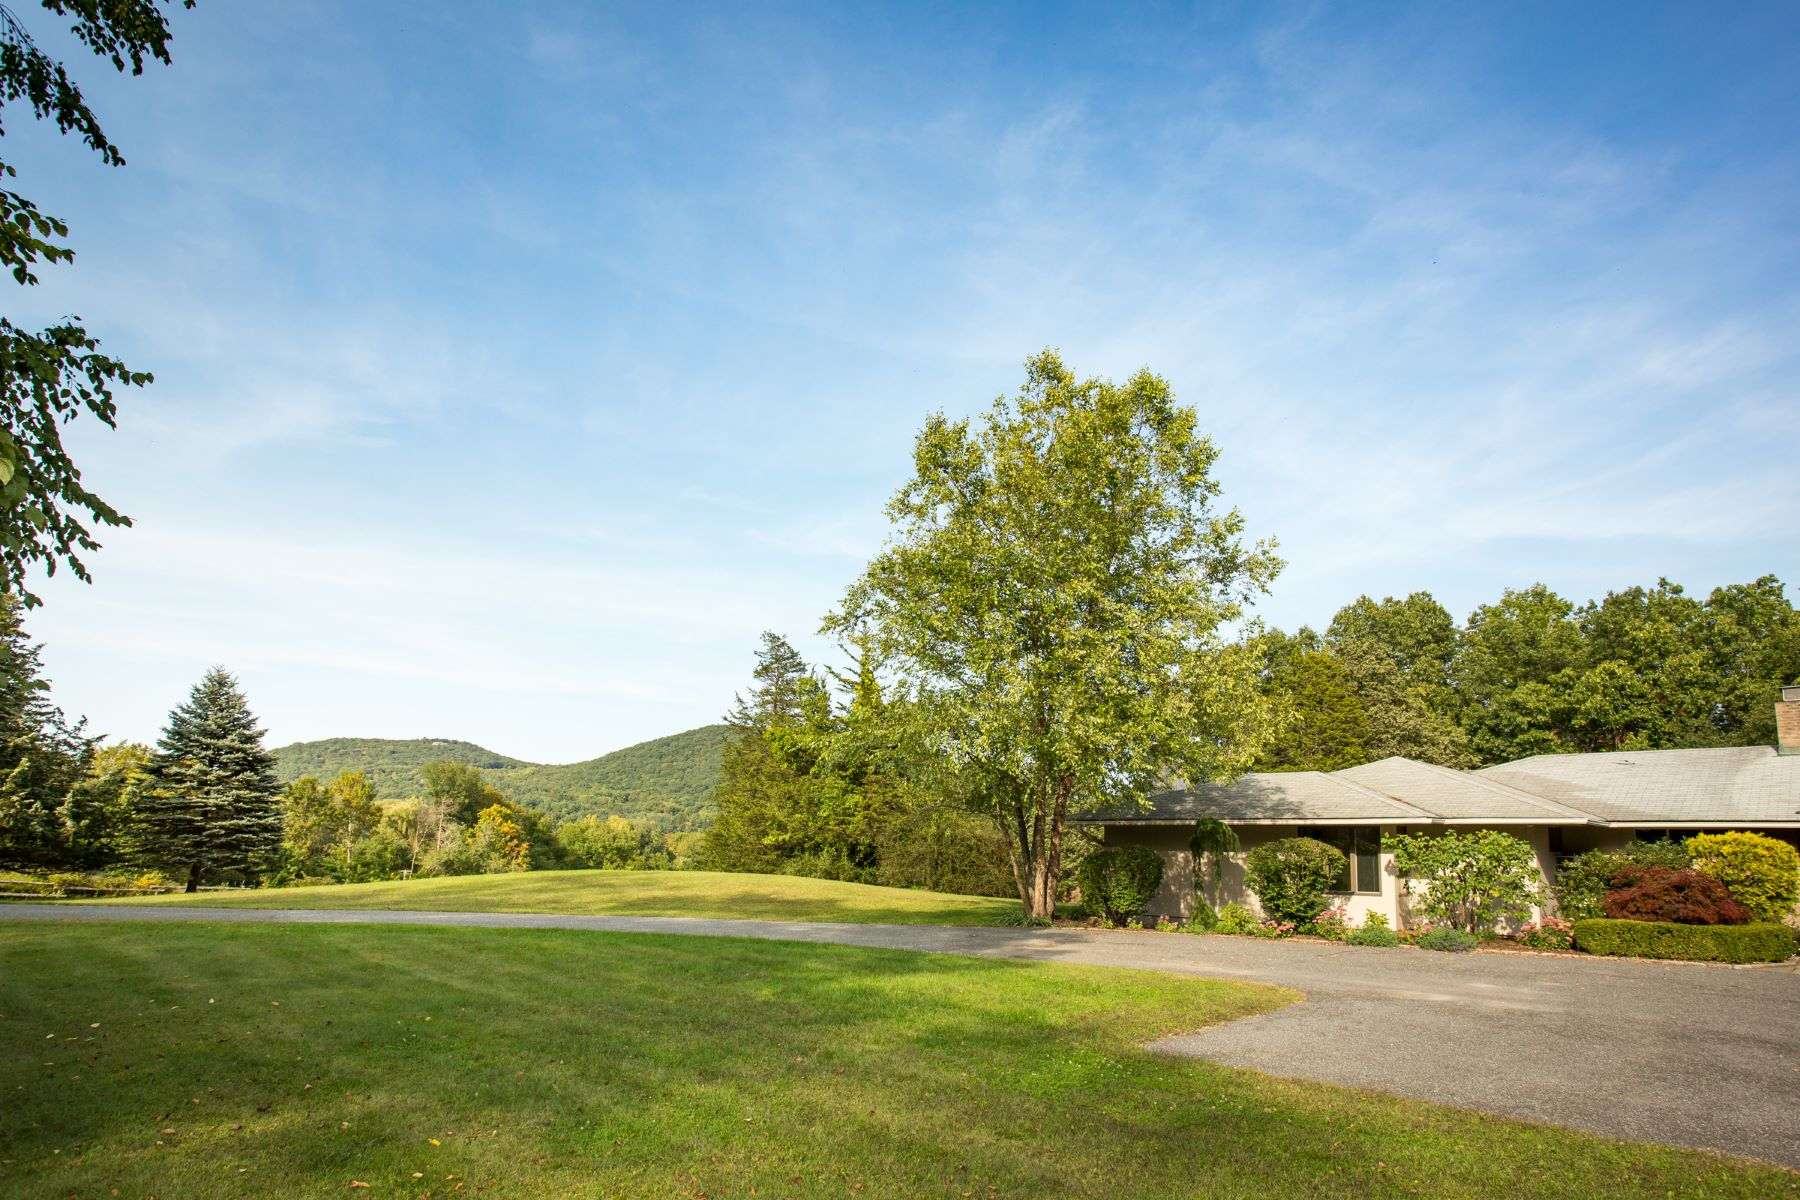 Single Family Home for Sale at Mid Century Mountainside 9 Old Stone Road, Kent, Connecticut, 06785 United States